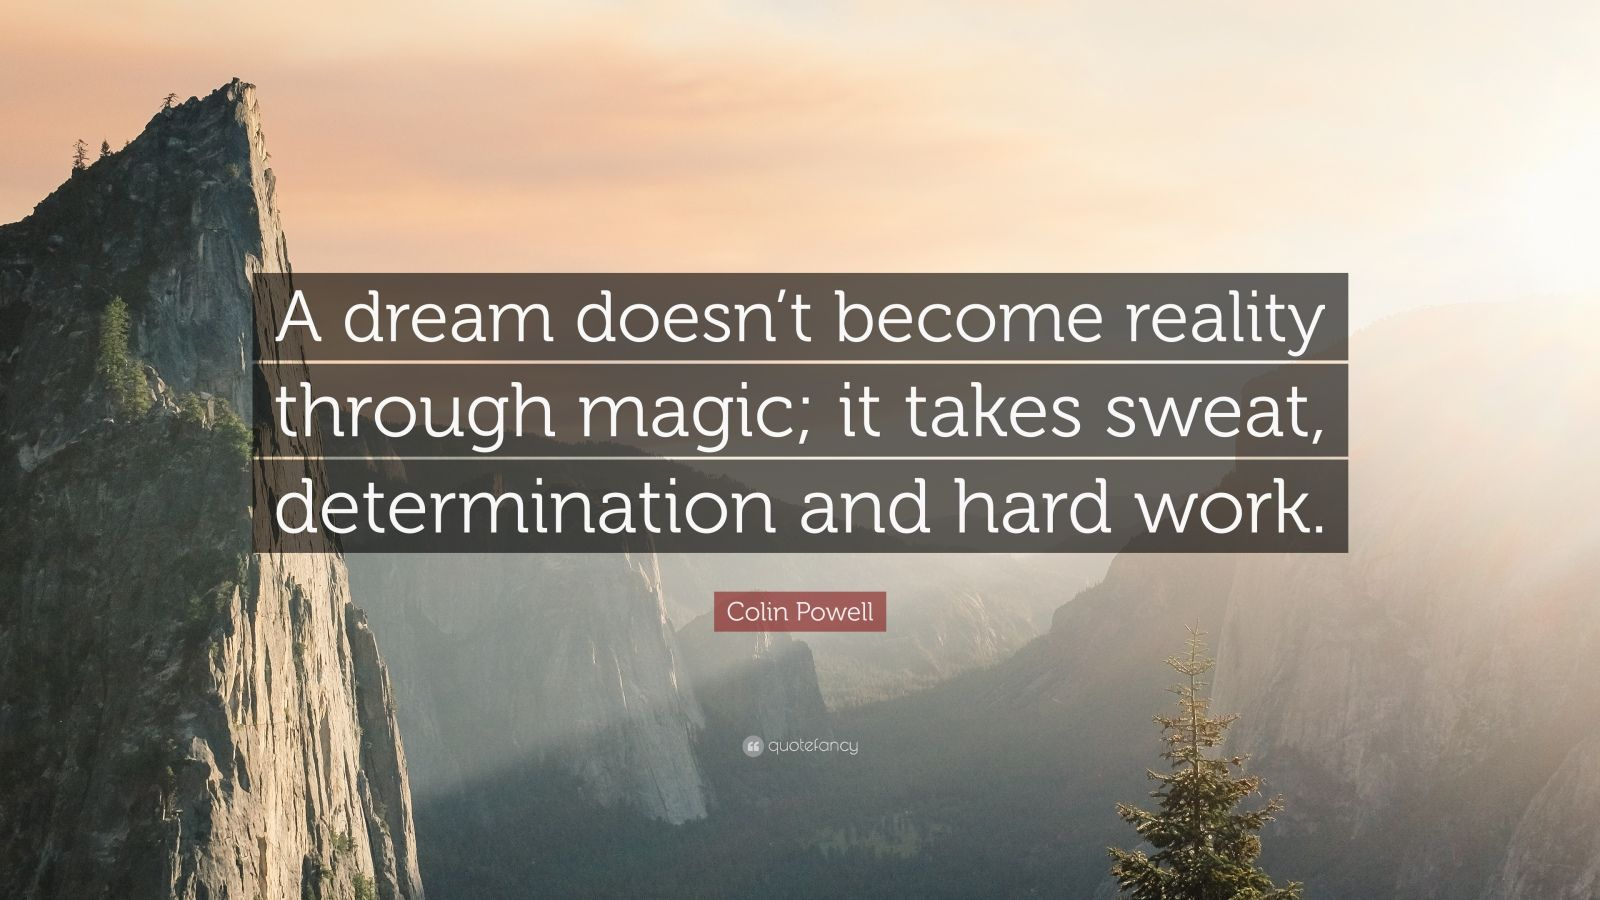 Work Hard Inspirational Quotes Wallpaper Colin Powell Quote A Dream Doesn T Become Reality